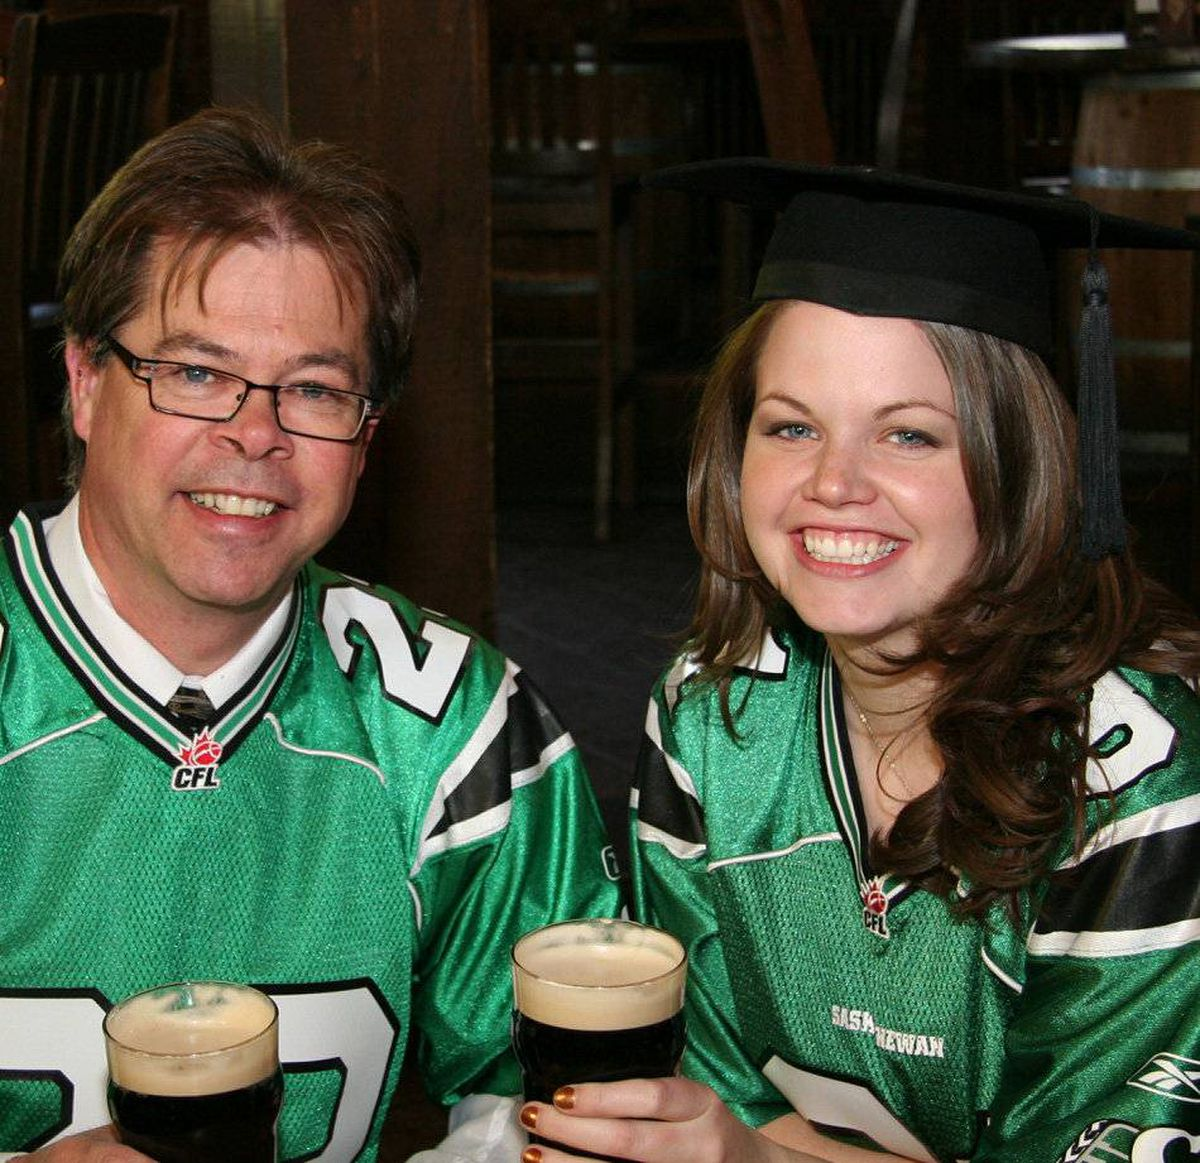 My parents came out to Halifax for my MBA graduation. Being true Saskatchewan Roughrider fans, my dad and I donned our jerseys while having celebratory beers at the Halifax Ale House.